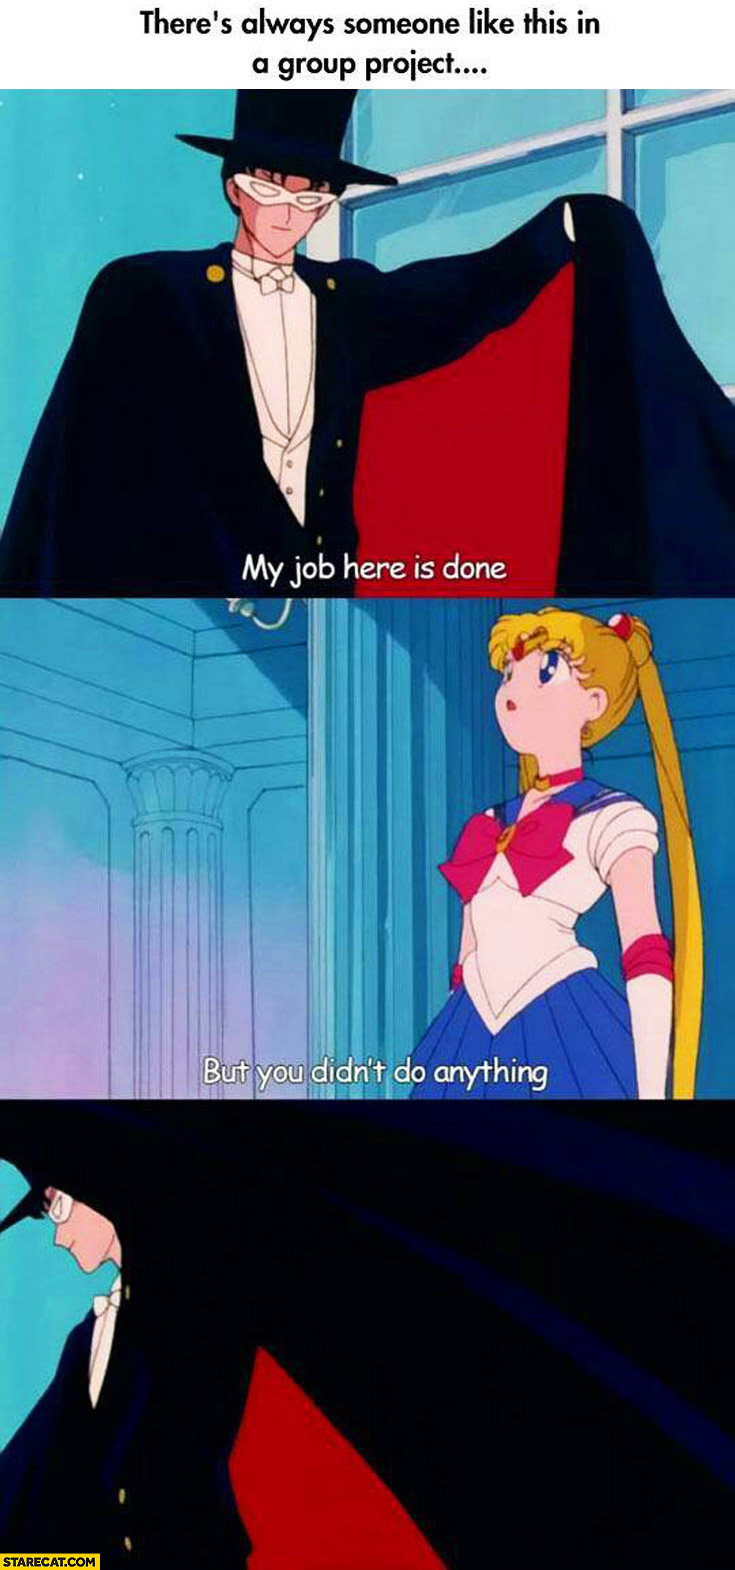 There's always someone like this in a group project my job here is done but you didn't do anything Sailor Moon